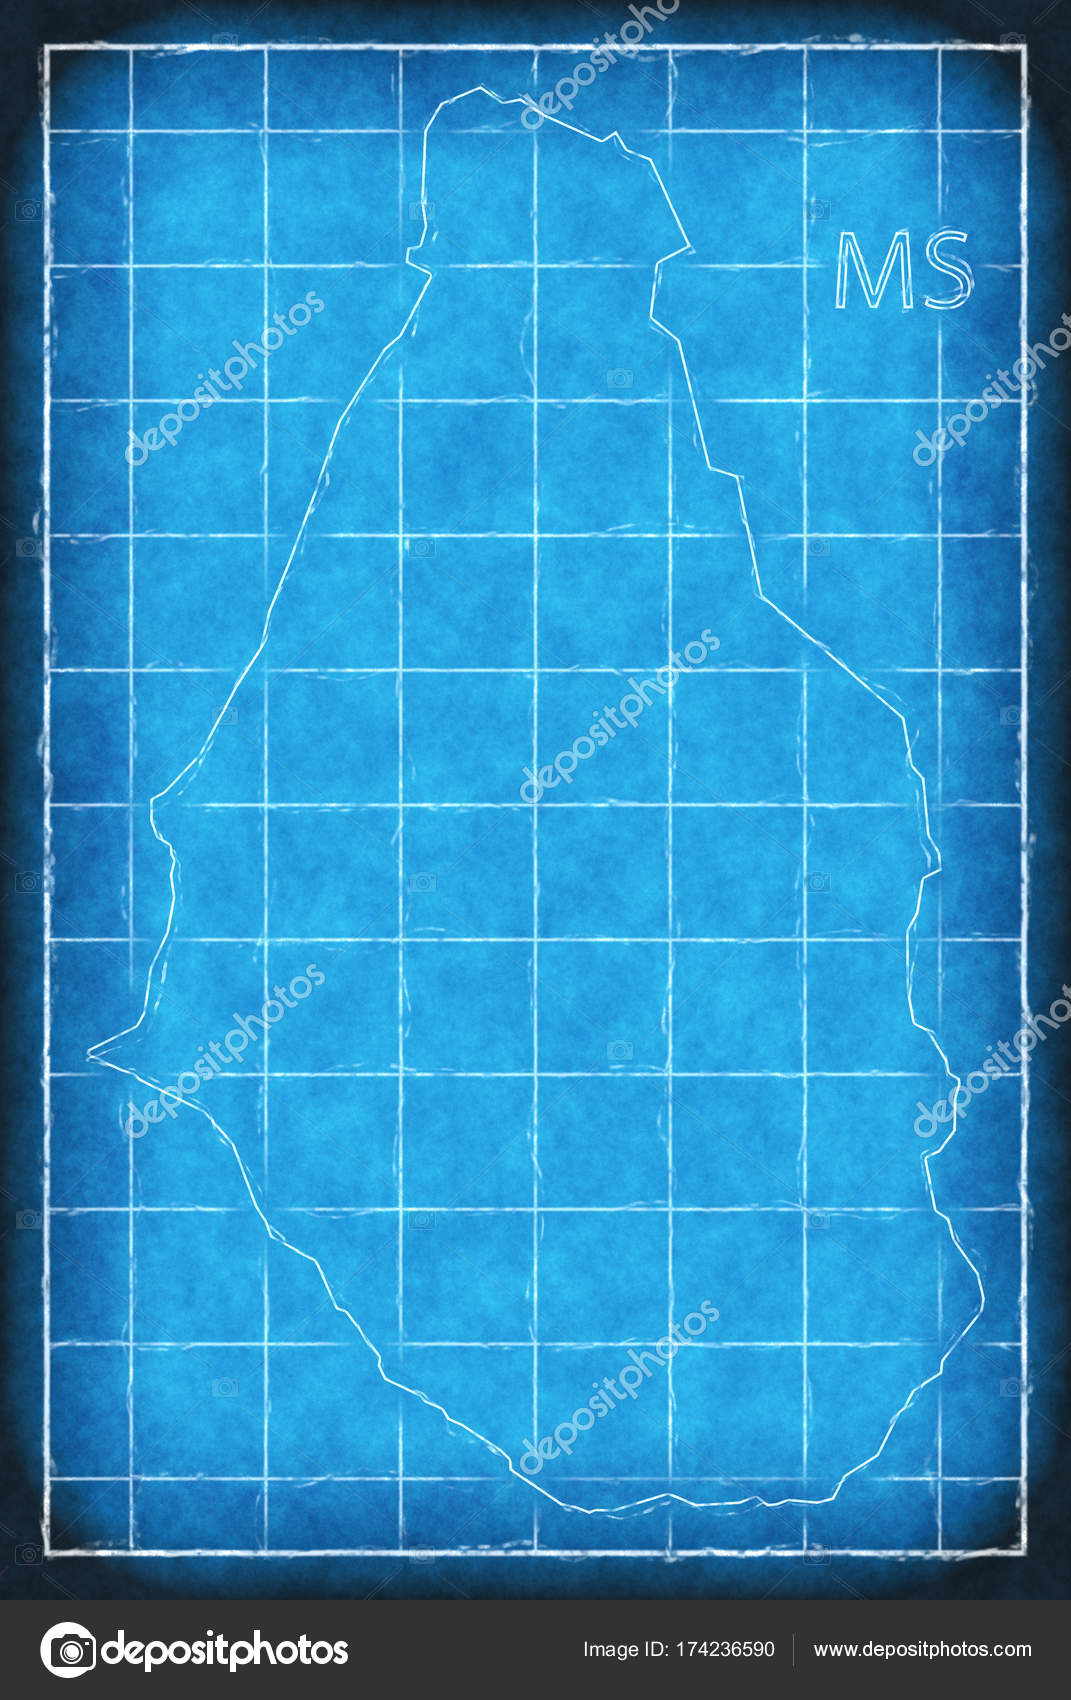 Montserrat map blue print artwork illustration silhouette — Stock